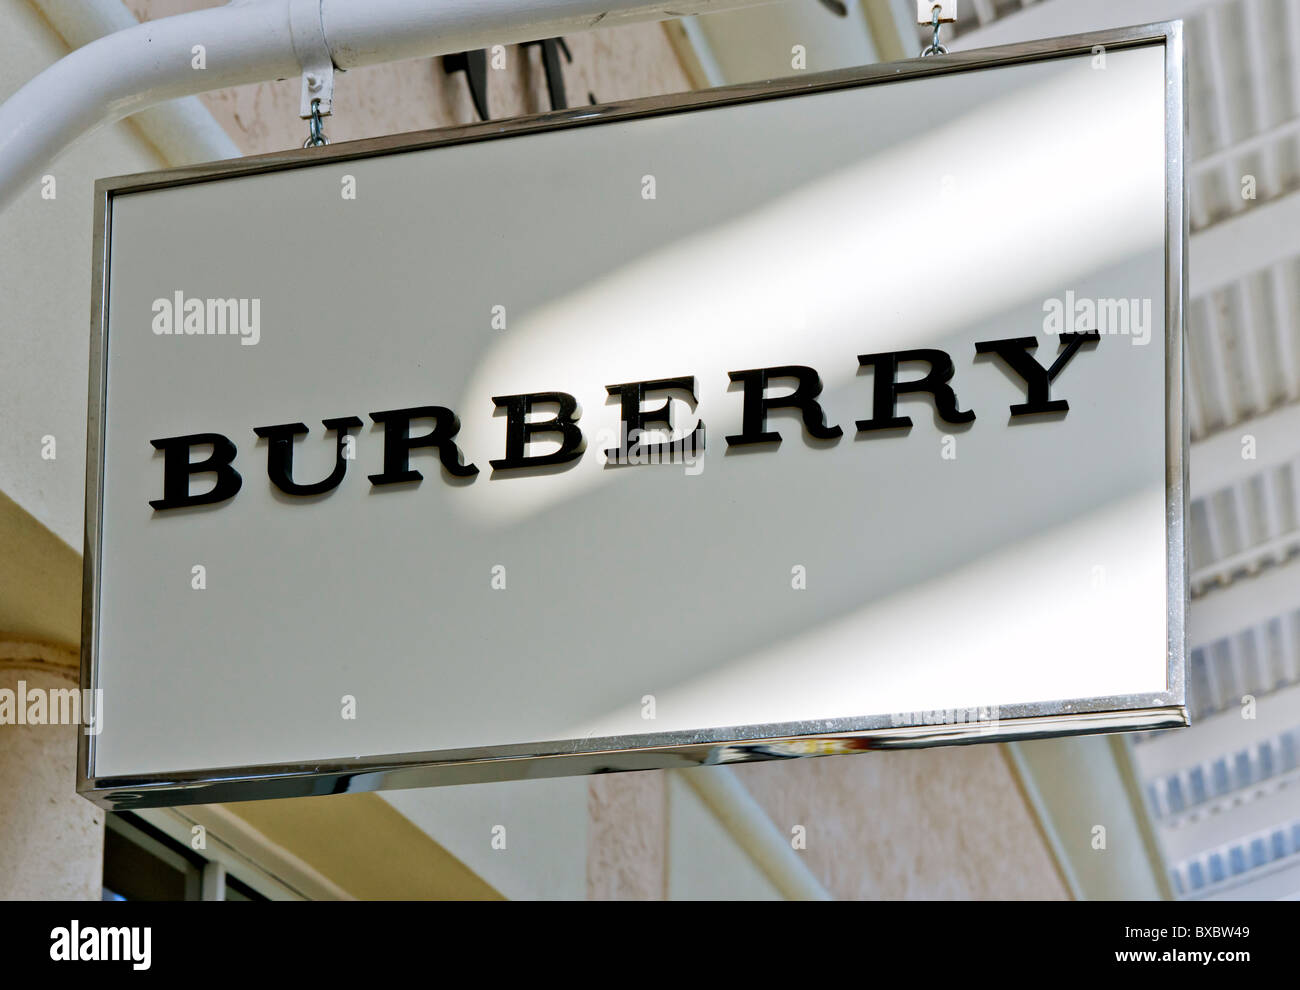 burnerry outlet c998  burberry outlet usa